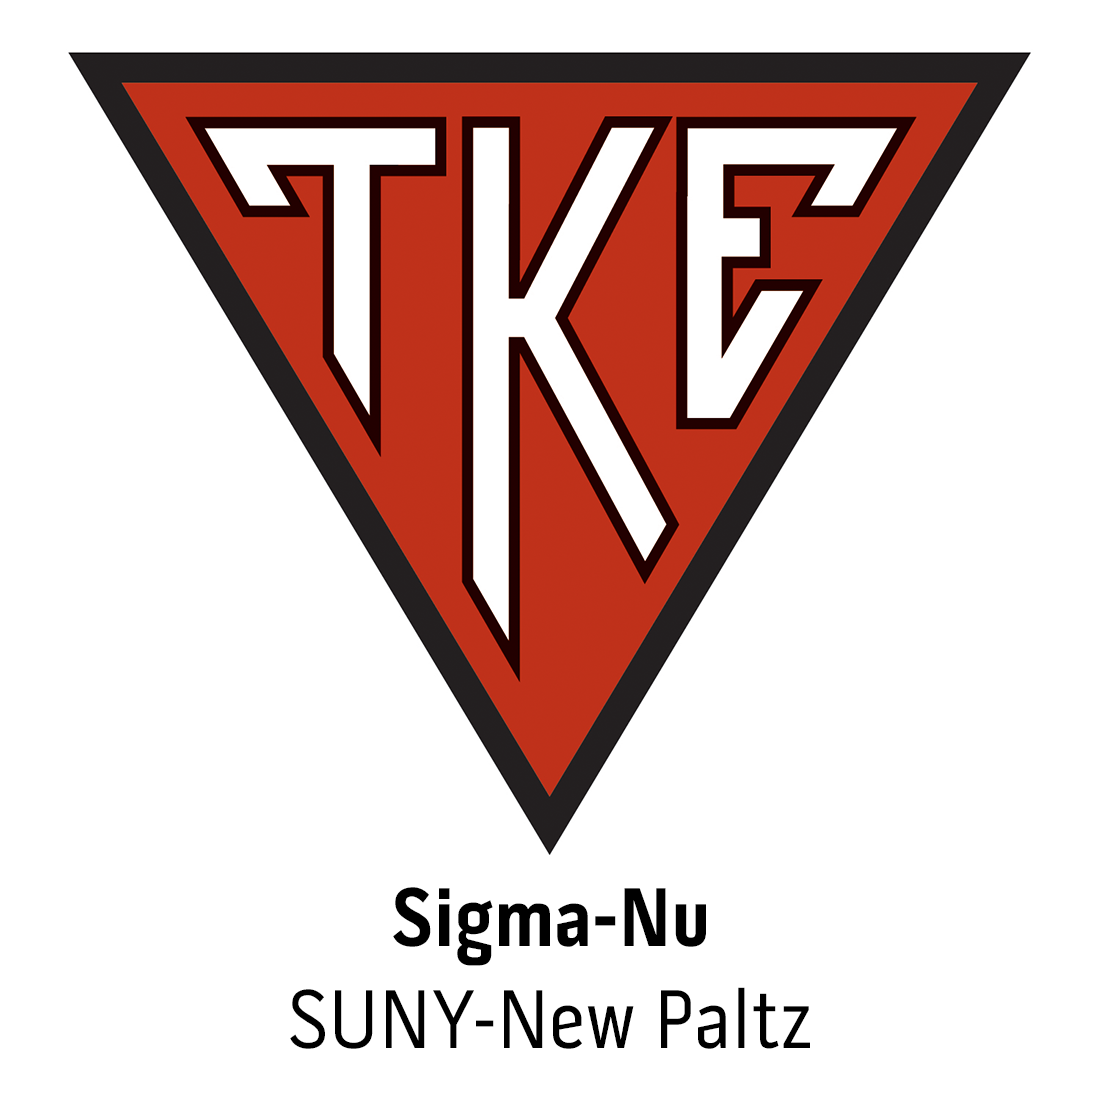 Sigma-Nu Chapter at State University of New York at New Paltz